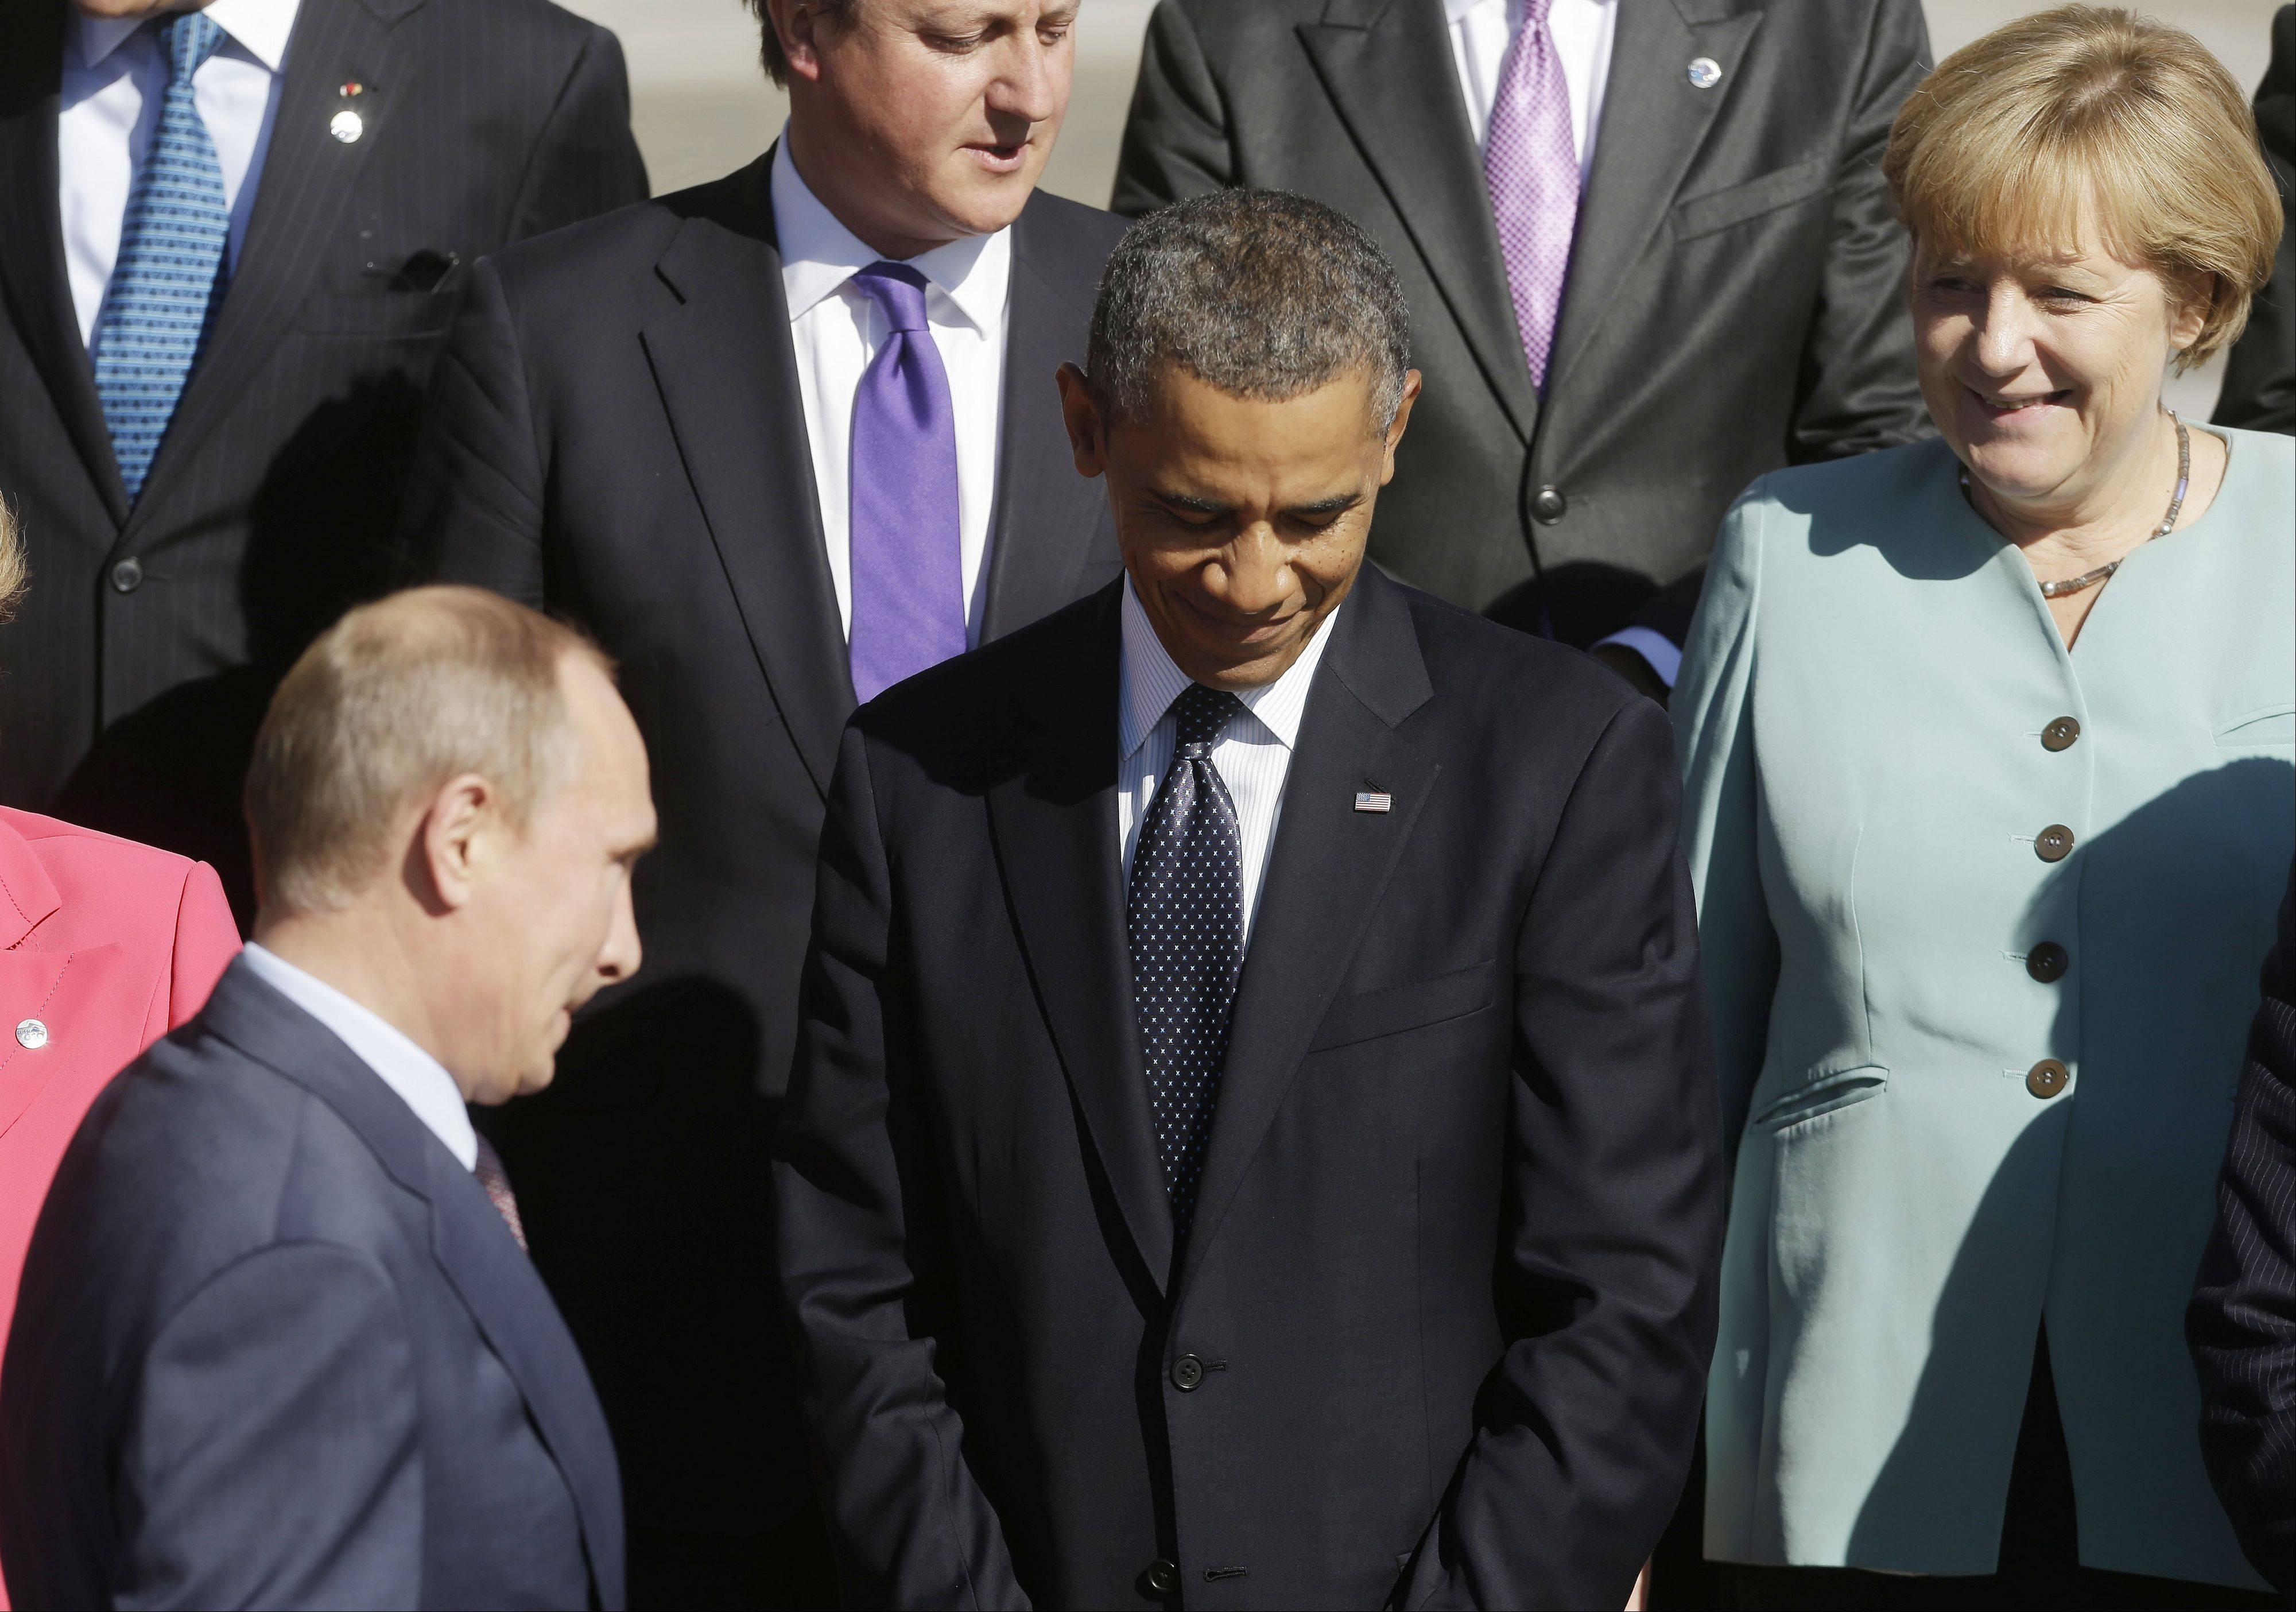 Russia's President Vladimir Putin, left, walks past U.S. President Barack Obama to join with other leaders for a photo at the G-20 summit at the Konstantin Palace in St. Petersburg, Russia, Friday.